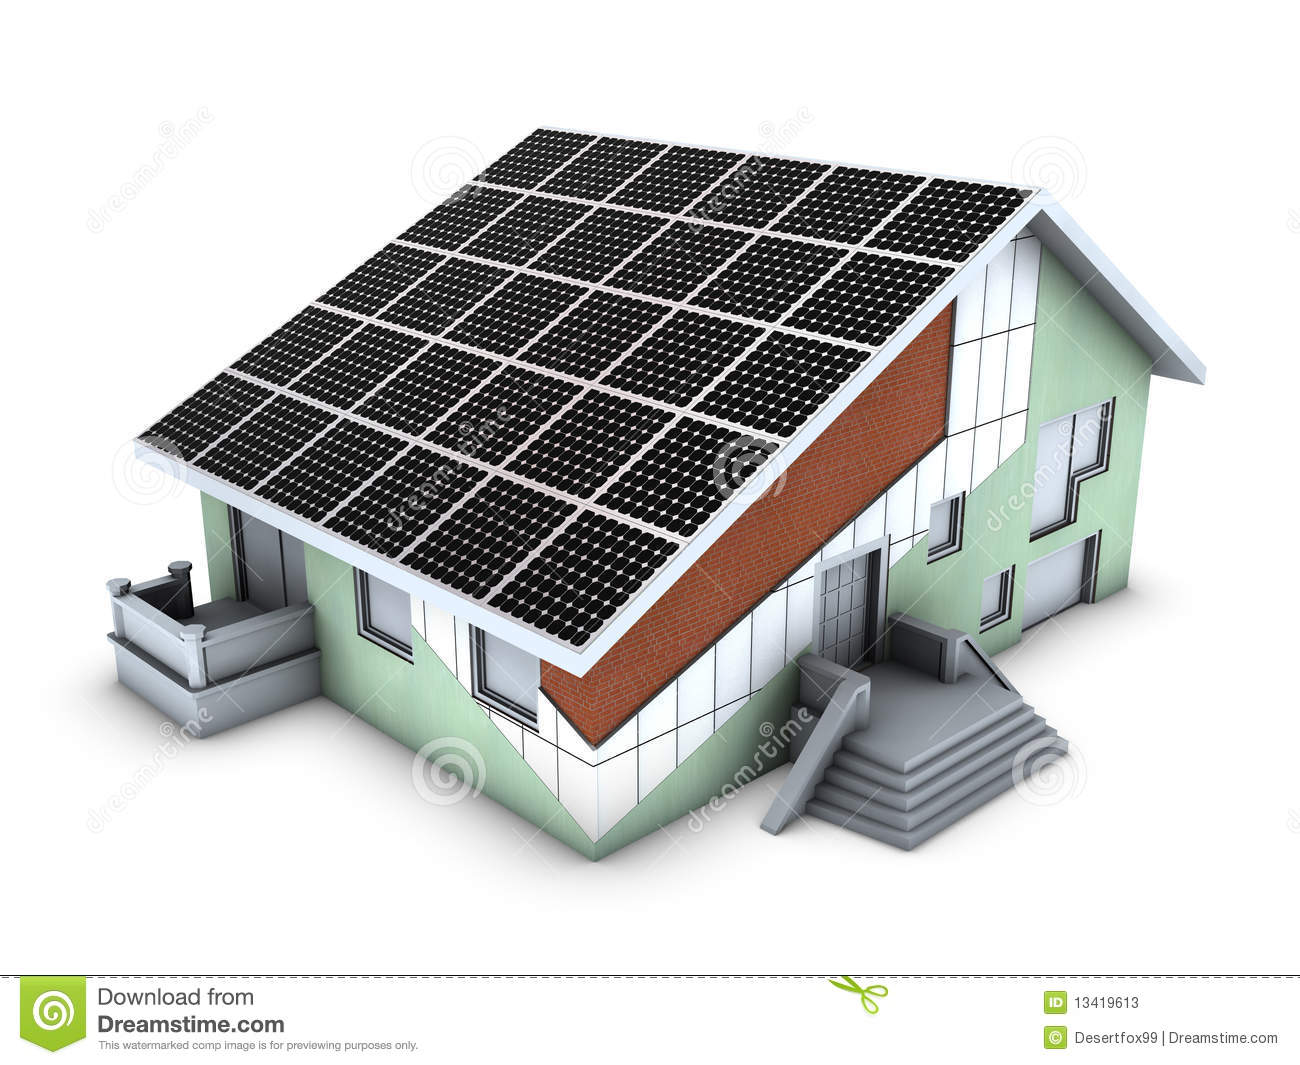 ... With Polystyrene Block And Solar Panel Stock Photos - Image: 13419613